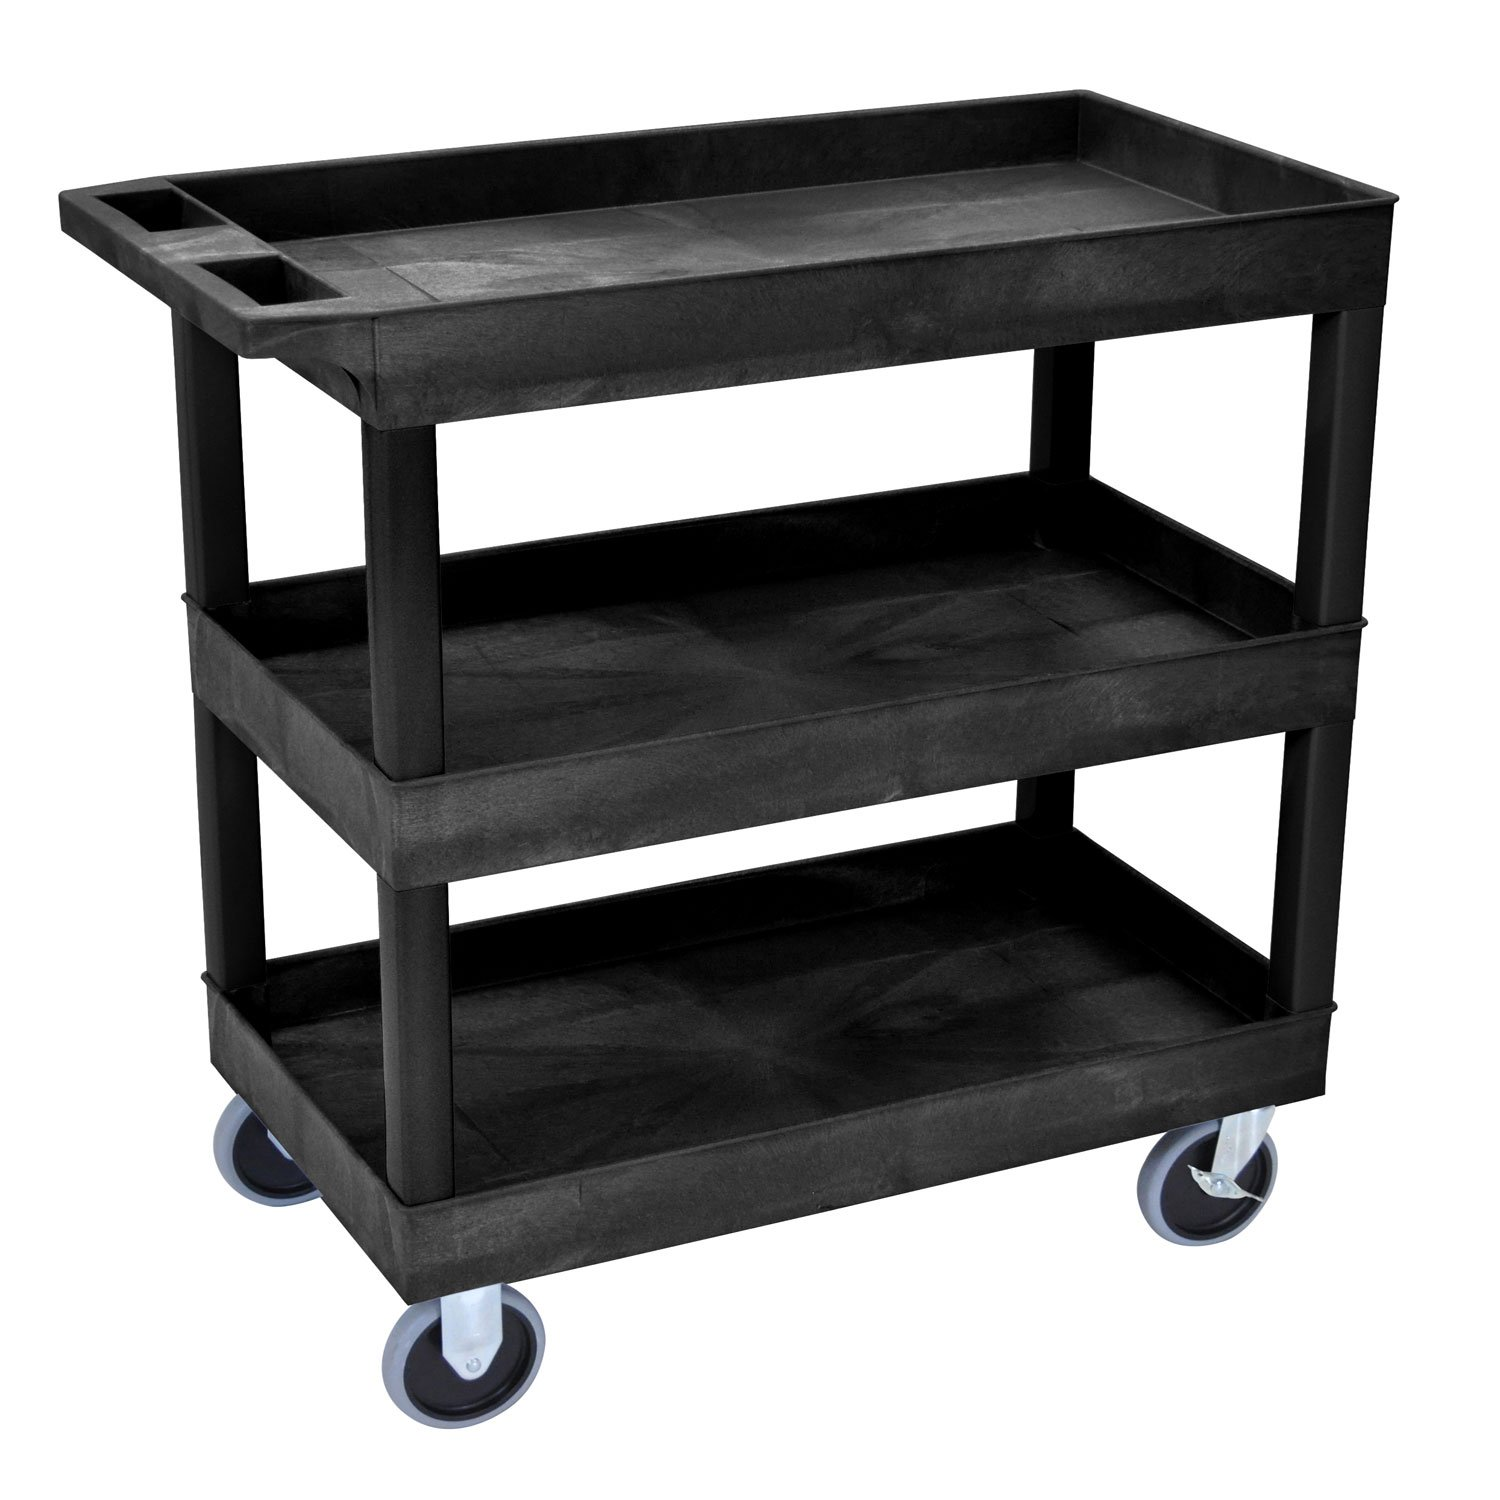 LUXOR EC111HD-B HD High Capacity Cart, 3 Tub Shelves, Black